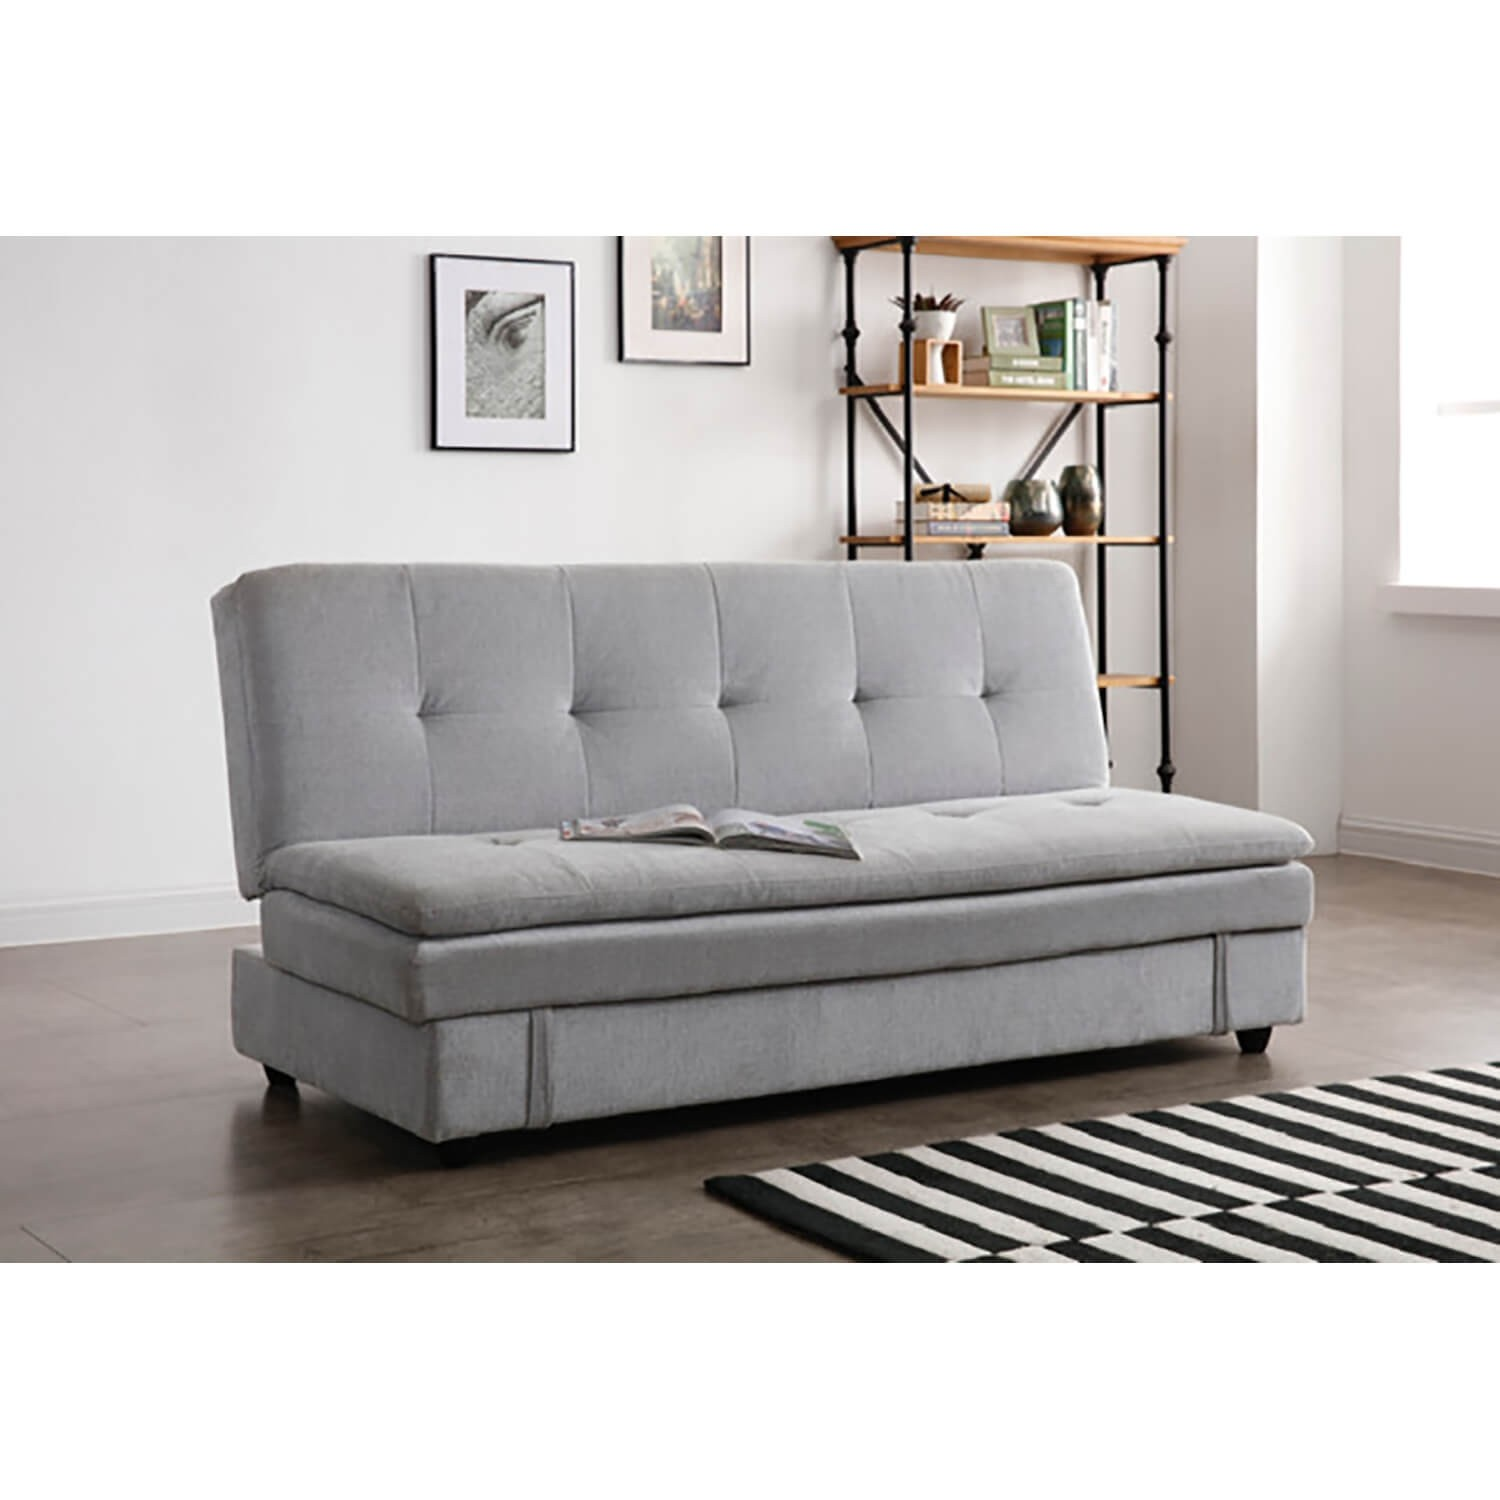 Ollie Sofabed With Storage Bed Sofa Misty